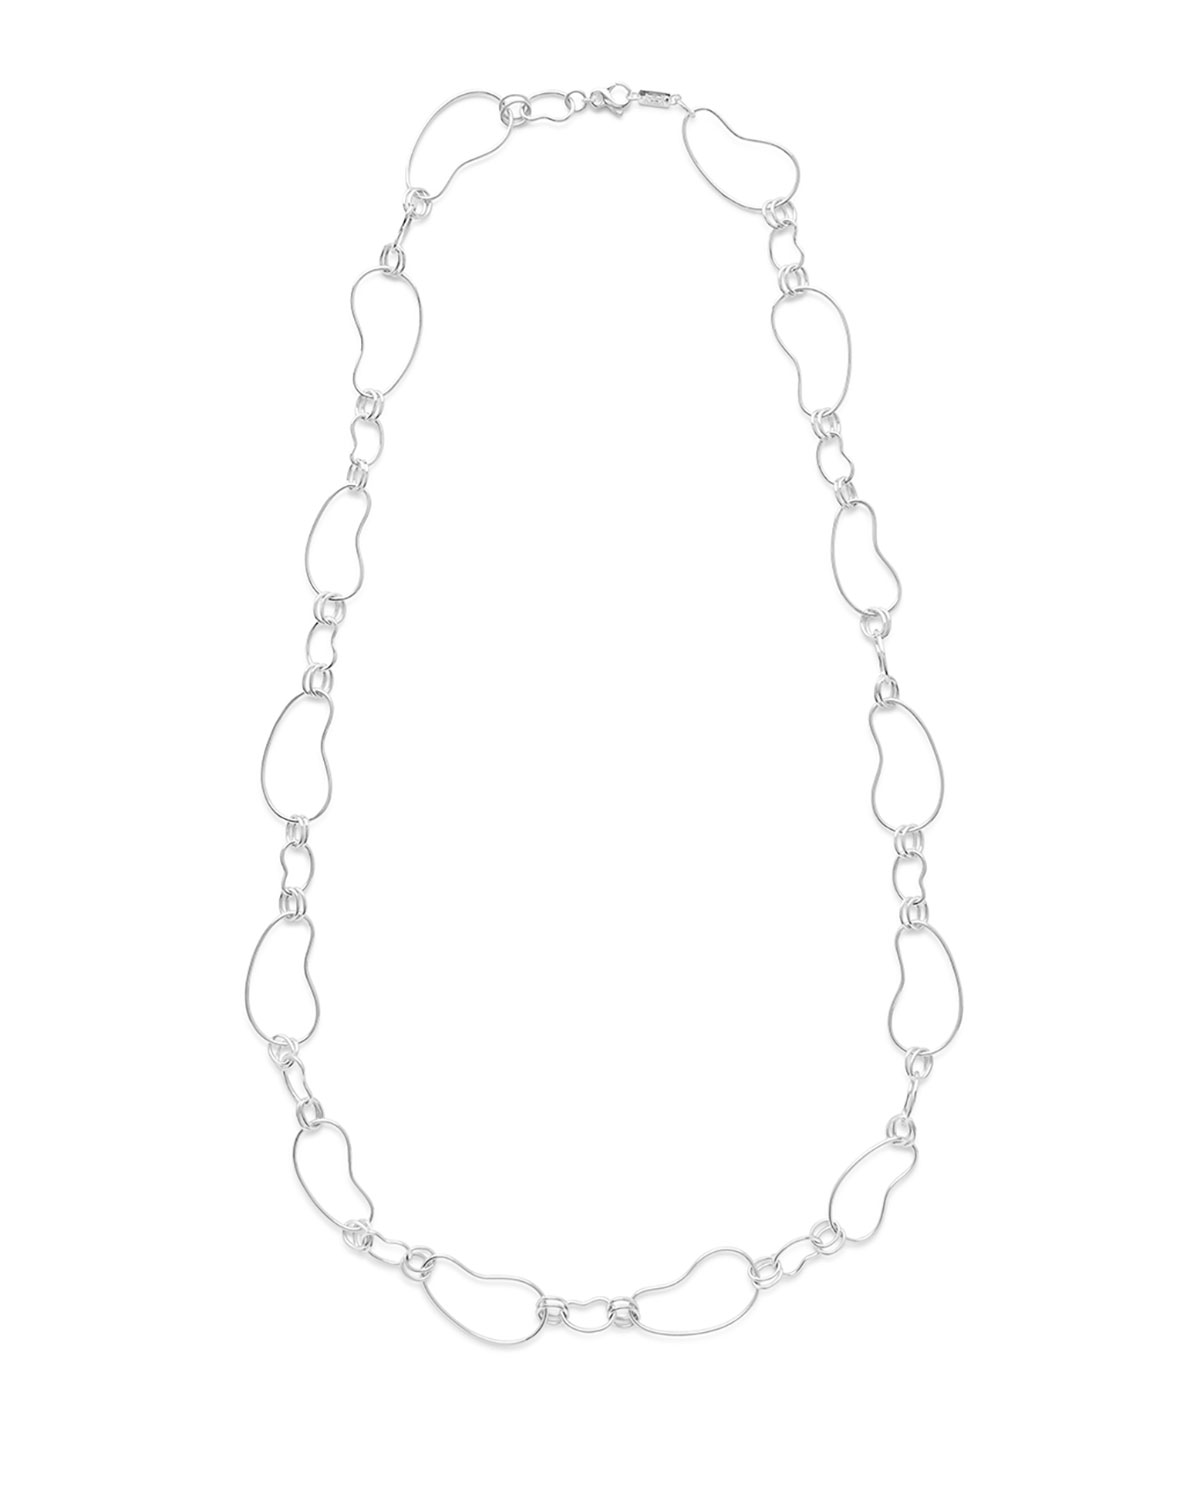 Ippolita 925 Classico Alternating Kidney Link Necklace